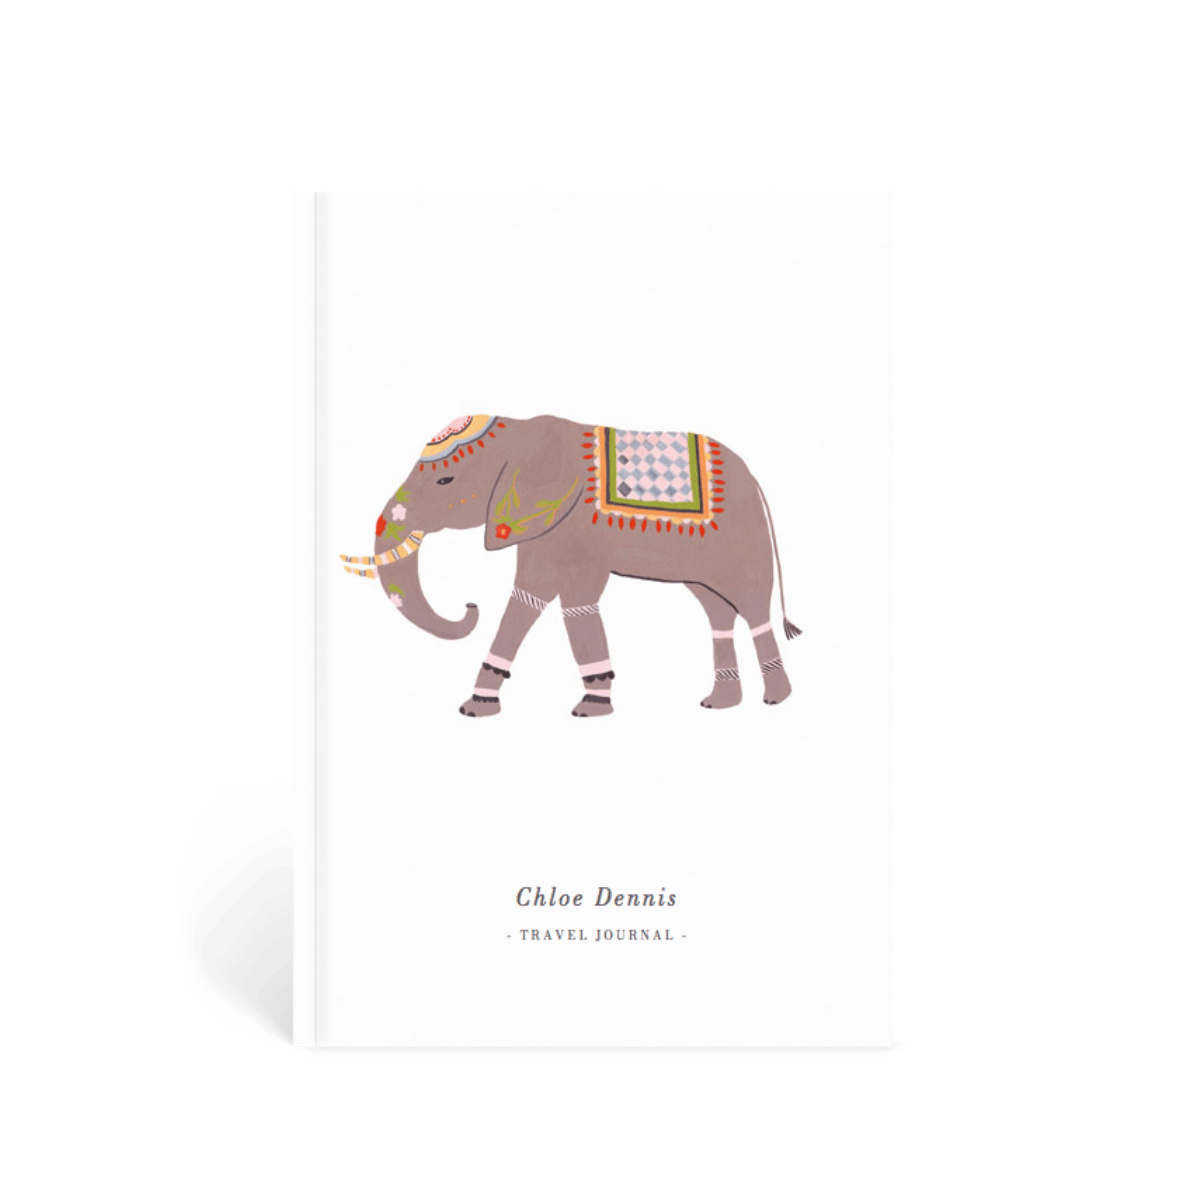 Https%3a%2f%2fwww.papier.com%2fproduct image%2f42043%2f25%2feastern elephant 10723 front 1532362430.png?ixlib=rb 1.1